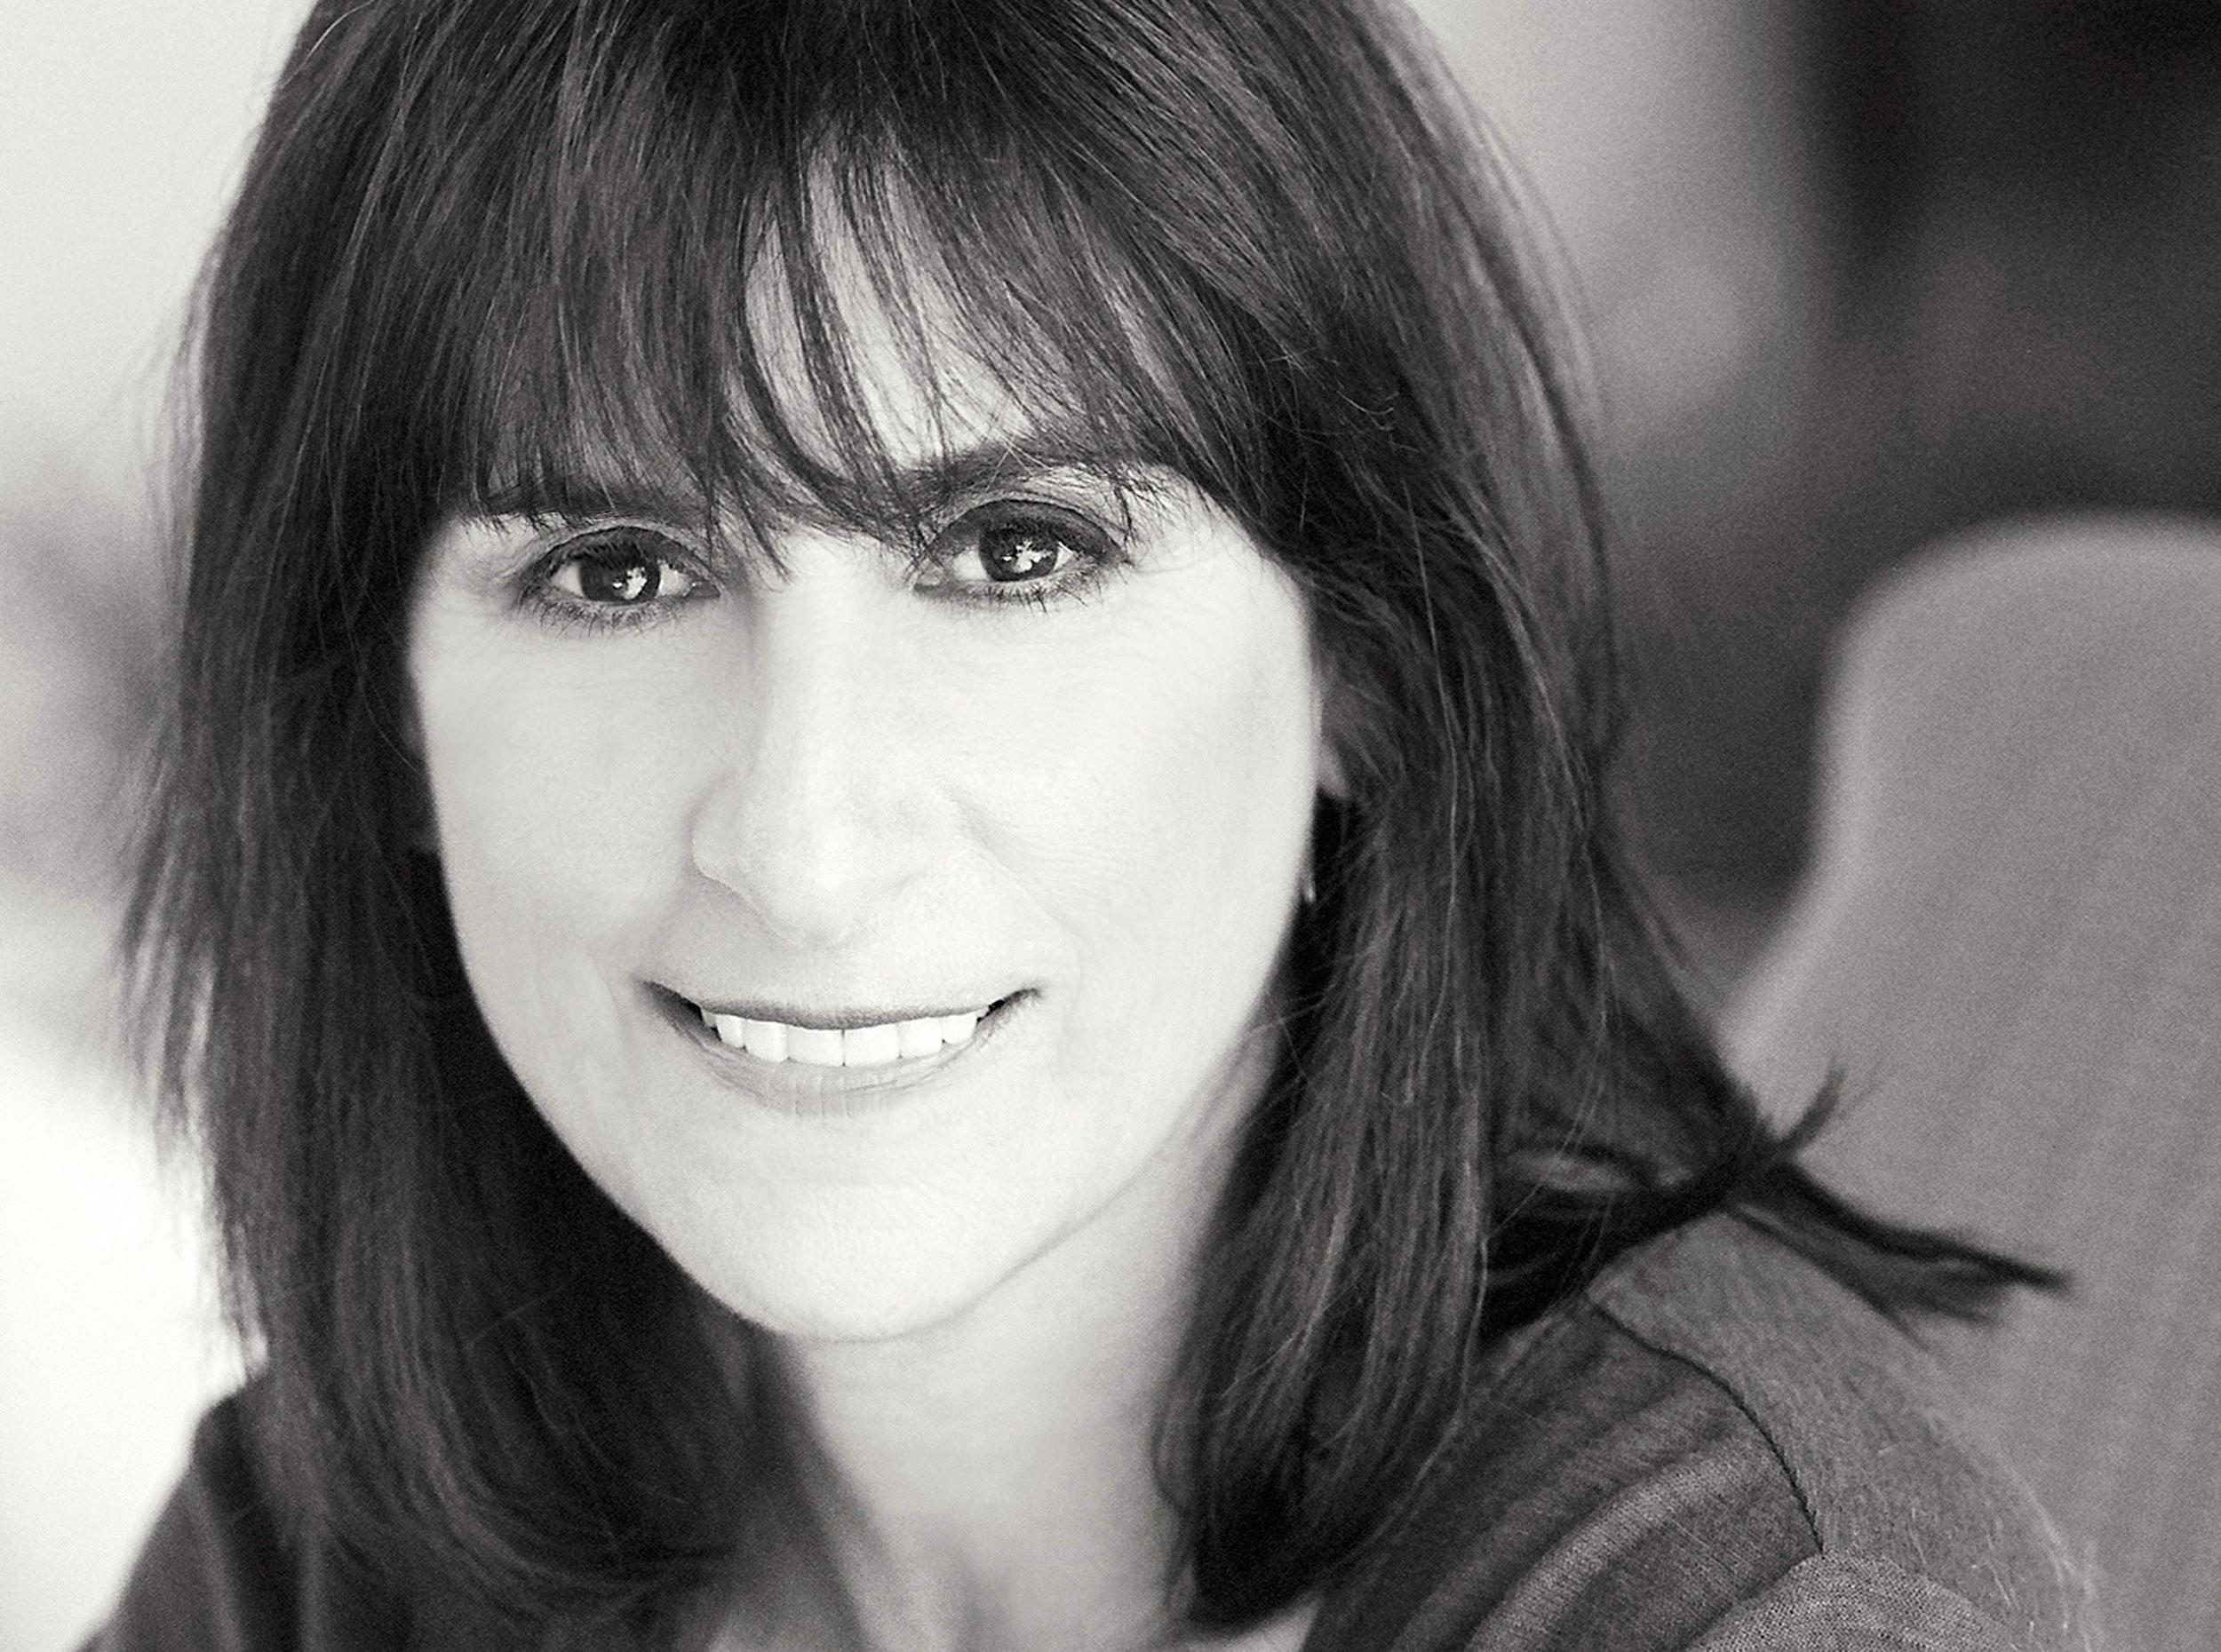 Karla Bonoff is an acclaimed singer/songwriter. Bonoff will be performing at{&nbsp;}The Kirkland Performance Center, a unique venue where you can catch some of the brightest stars on stage in an intimate one-of a kind setting. Executive Director Jeff Lockhart gave Seattle Refined an exclusive sneak peek into their exciting 2018-2919 season. Photo courtesy of Karla Bonoff.<p></p>